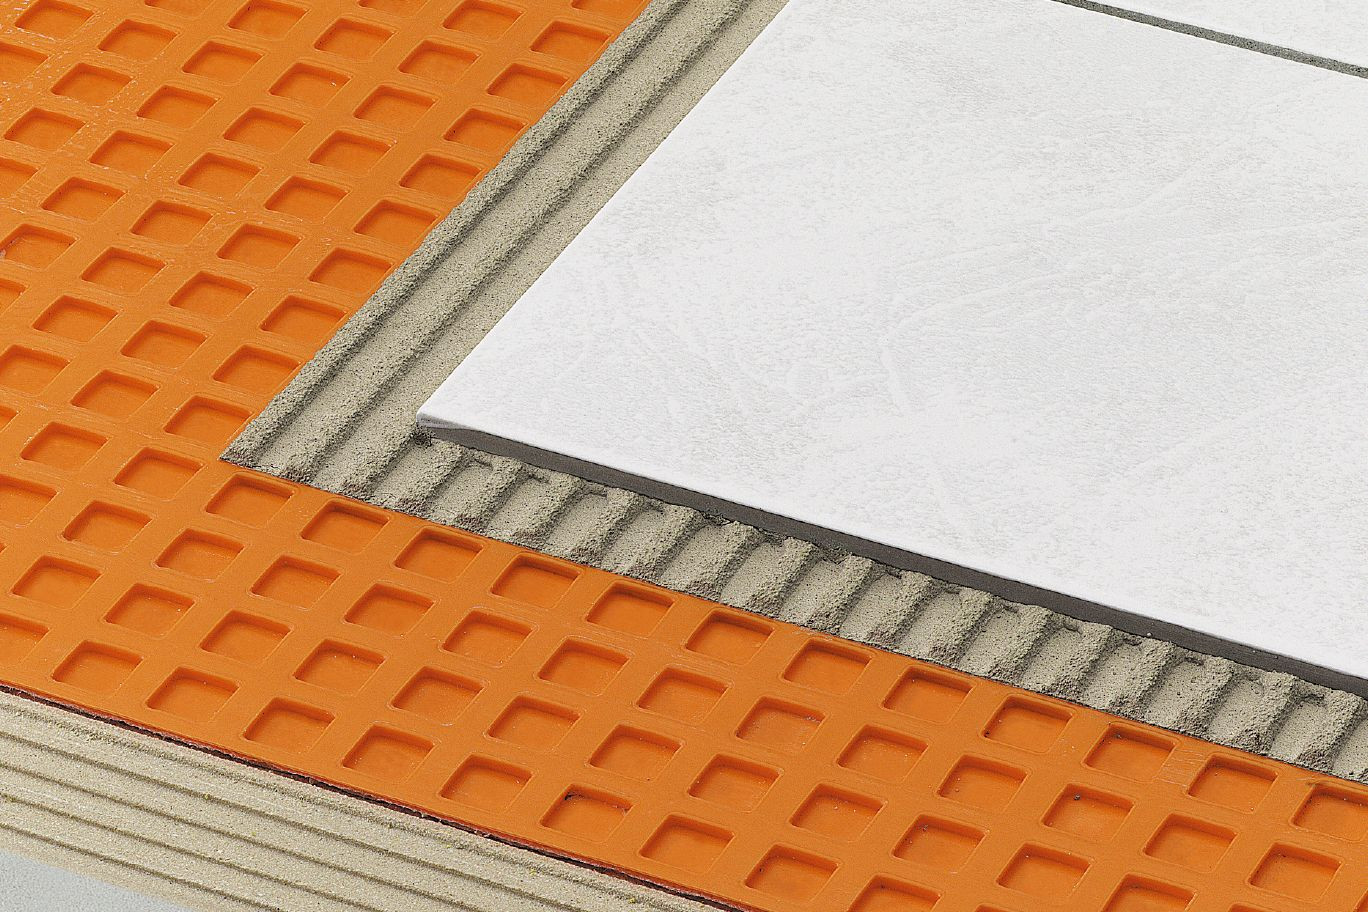 can you put hardwood floors over tile of schlutera ditra ditra xl uncoupling ditra membranes throughout schlutera ditra ditra xl